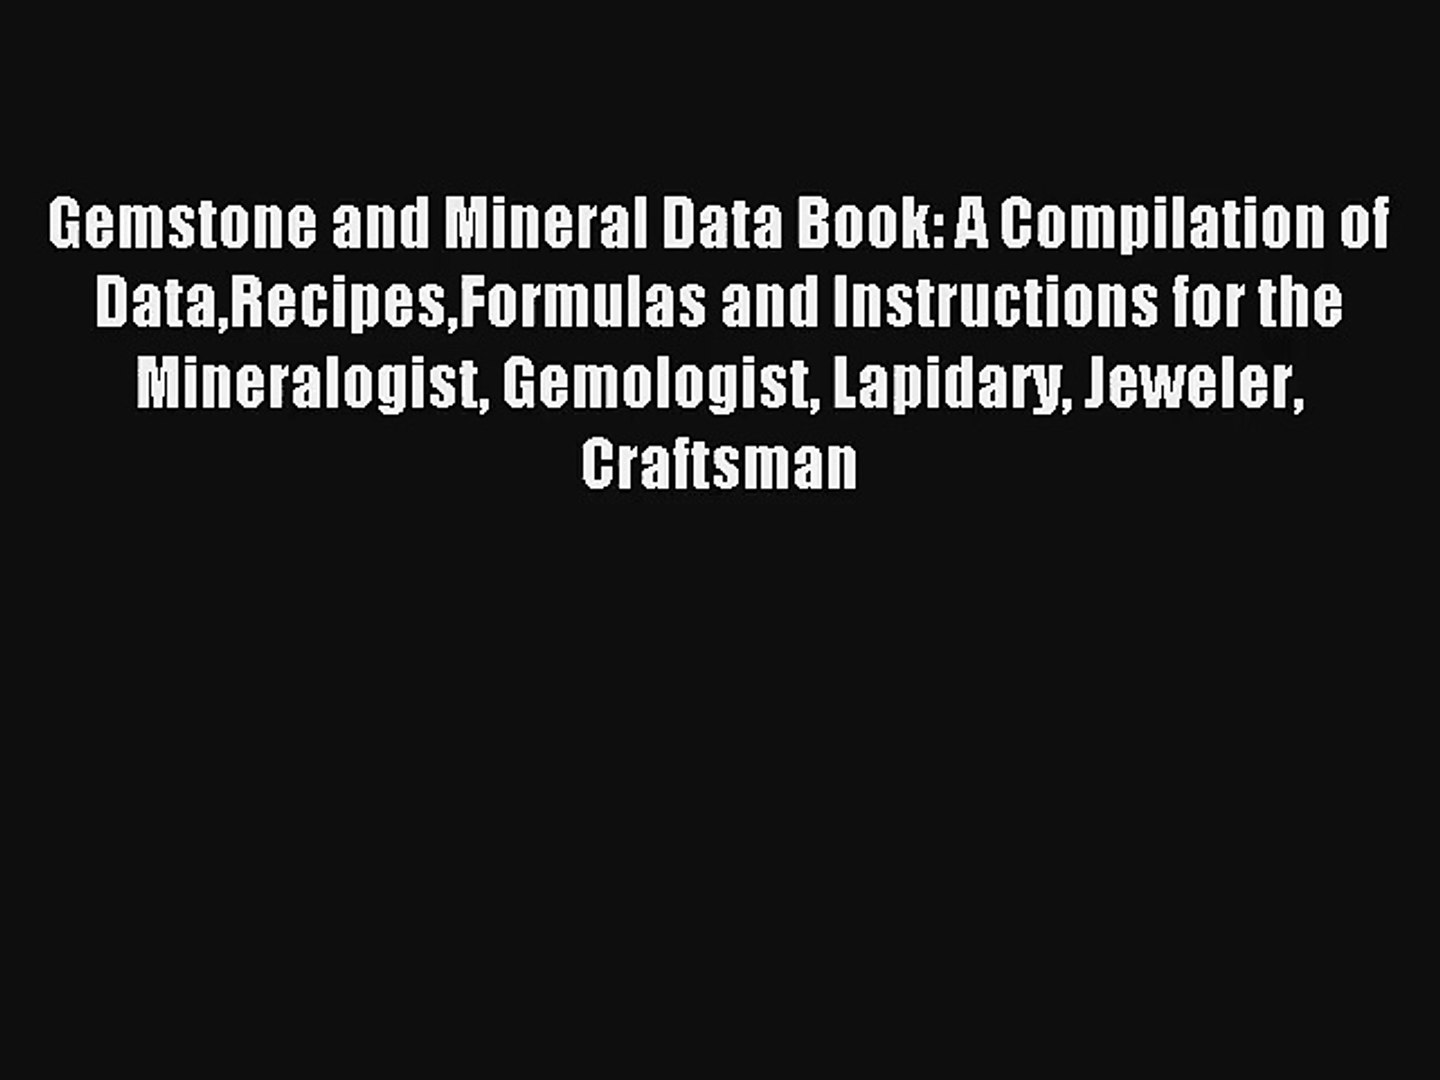 Download Gemstone and Mineral Data Book: A Compilation of  DataRecipesFormulas and Instructions